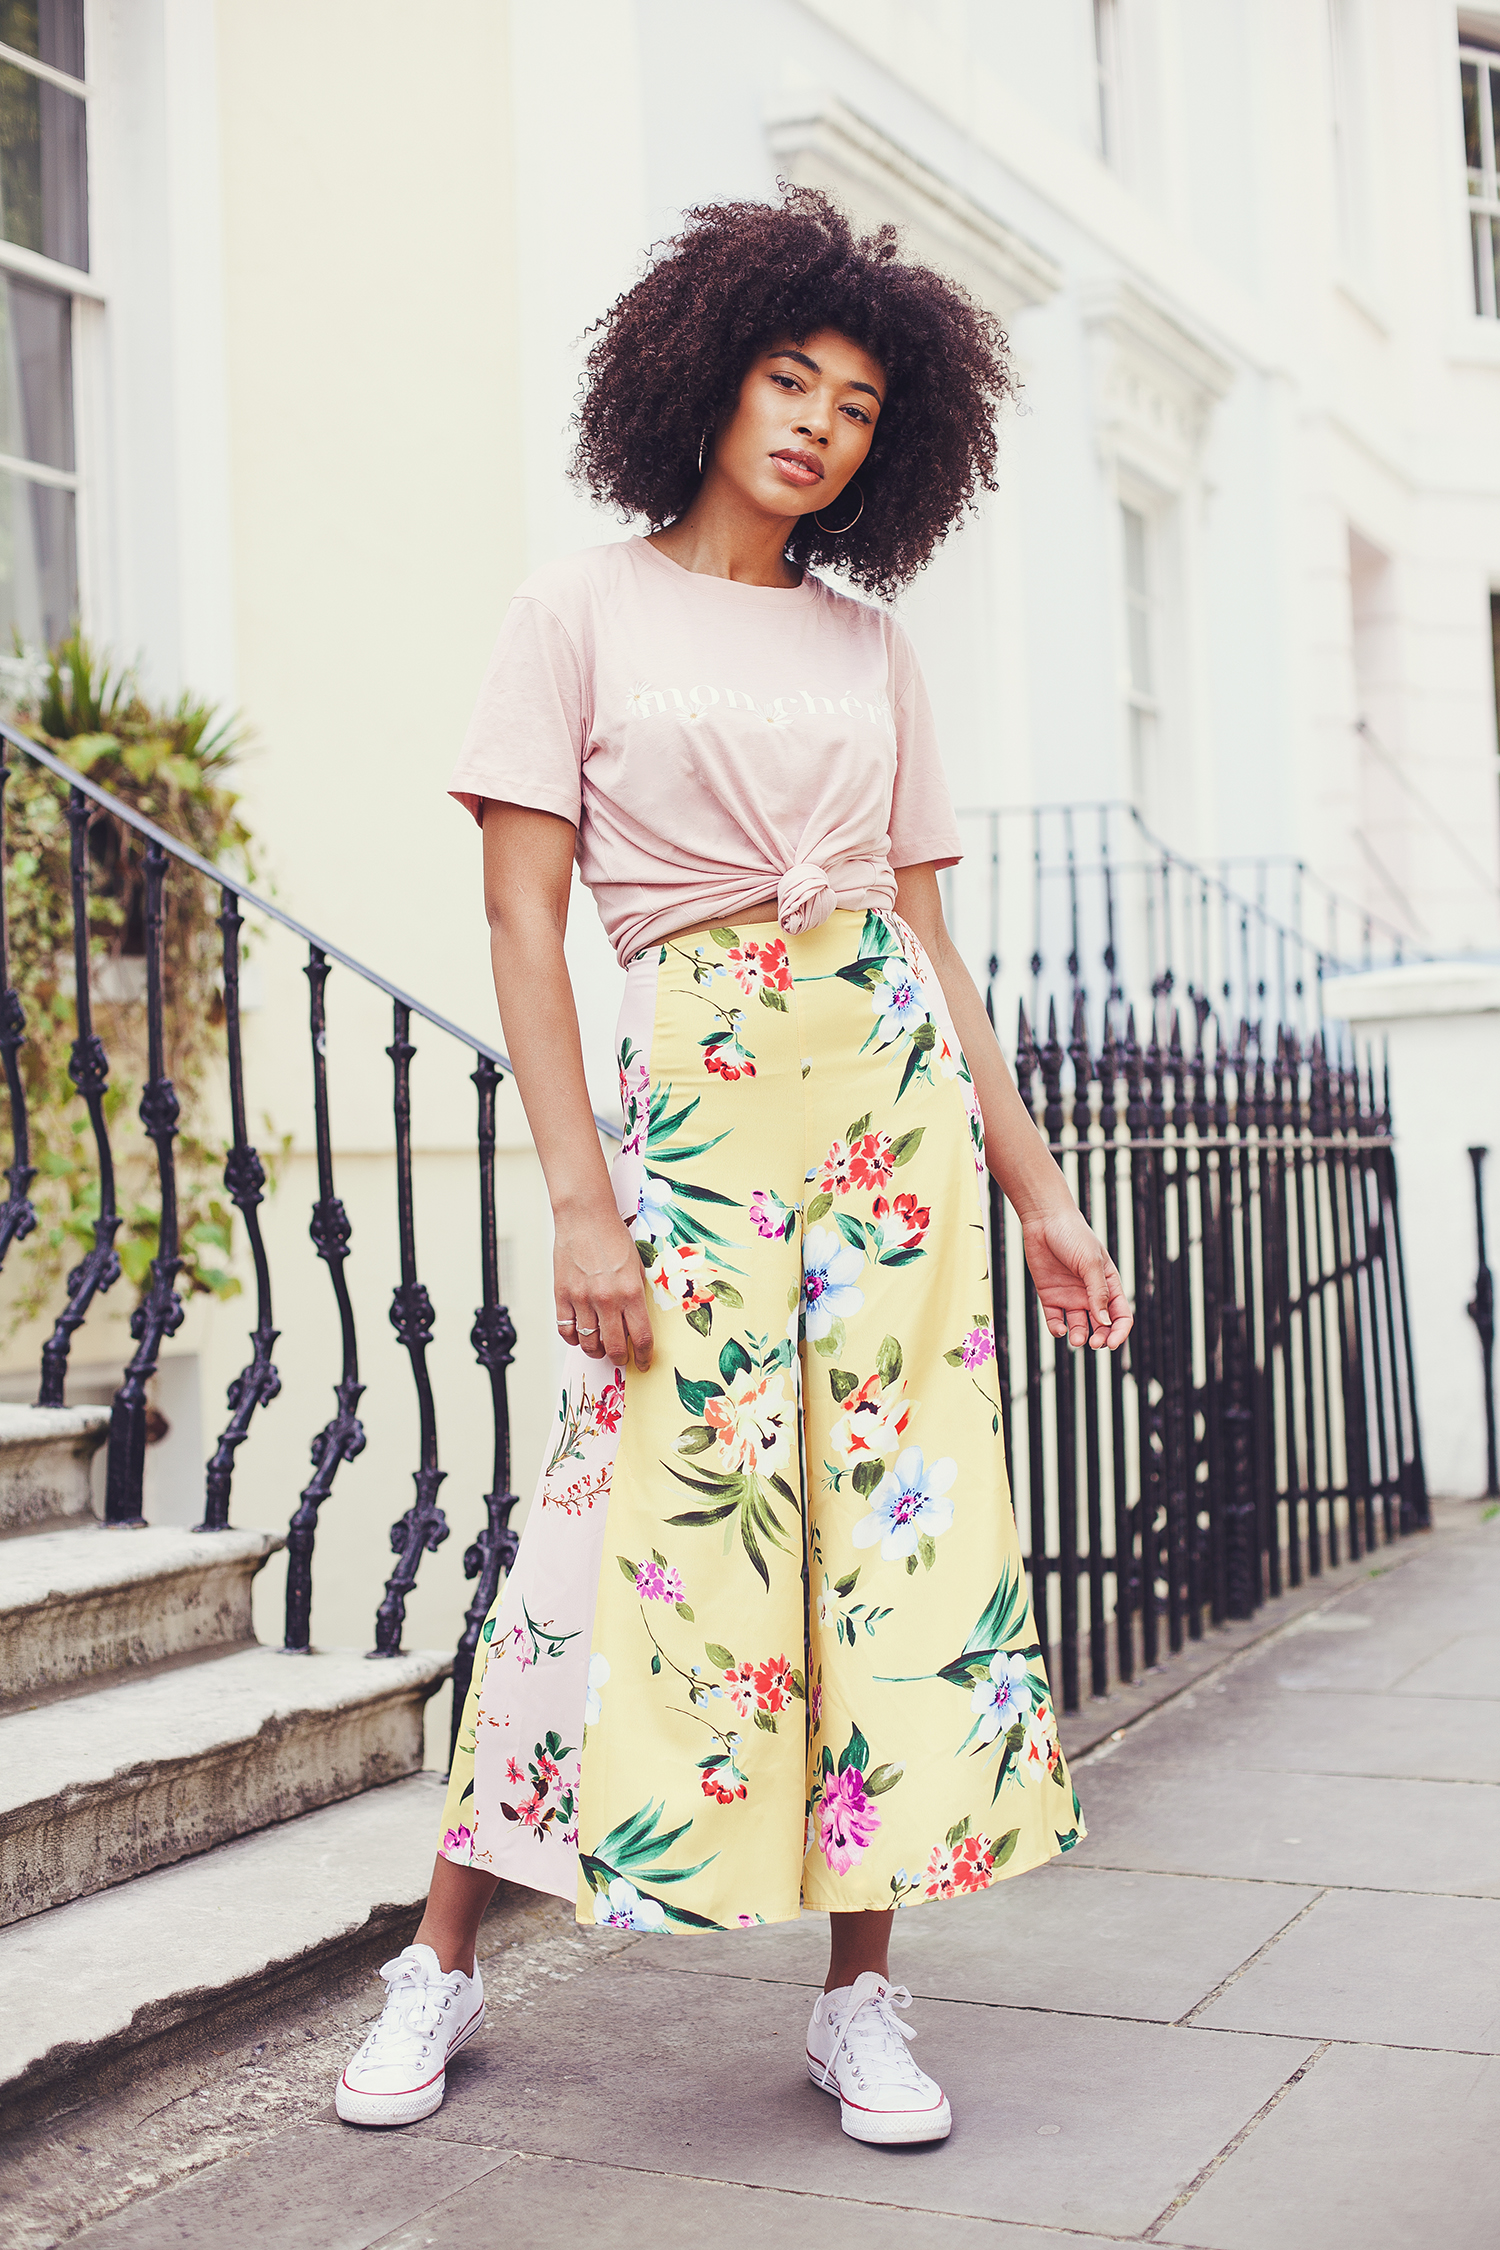 Portrait of fashion blogger Lesley in Notting Hill by Ailera Stone